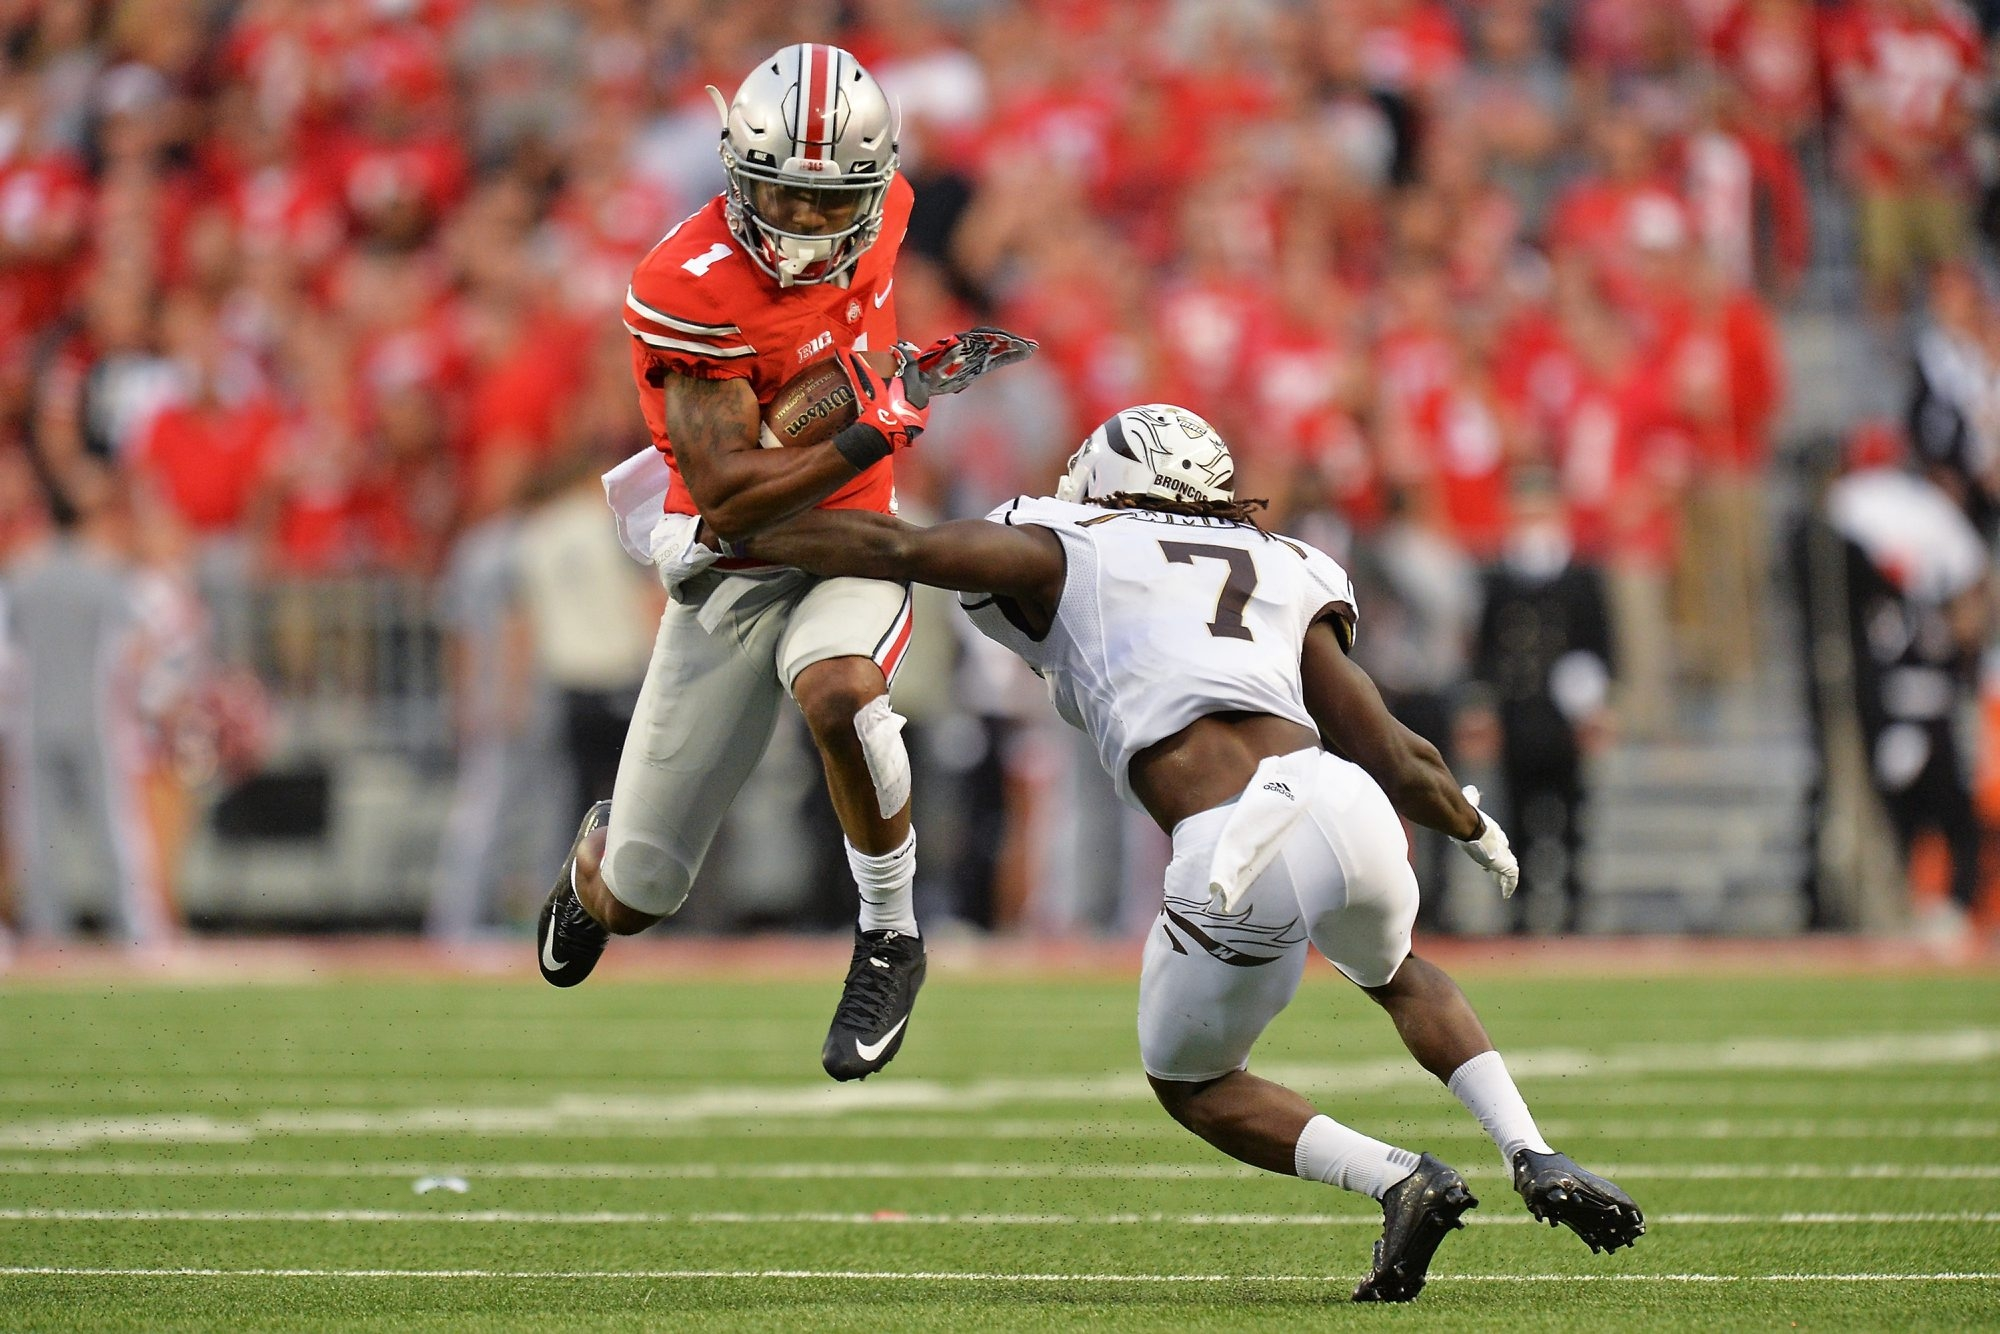 Conditioning was a big factor in Braxton Miller's move from quarterback to wide receiver at Ohio State.